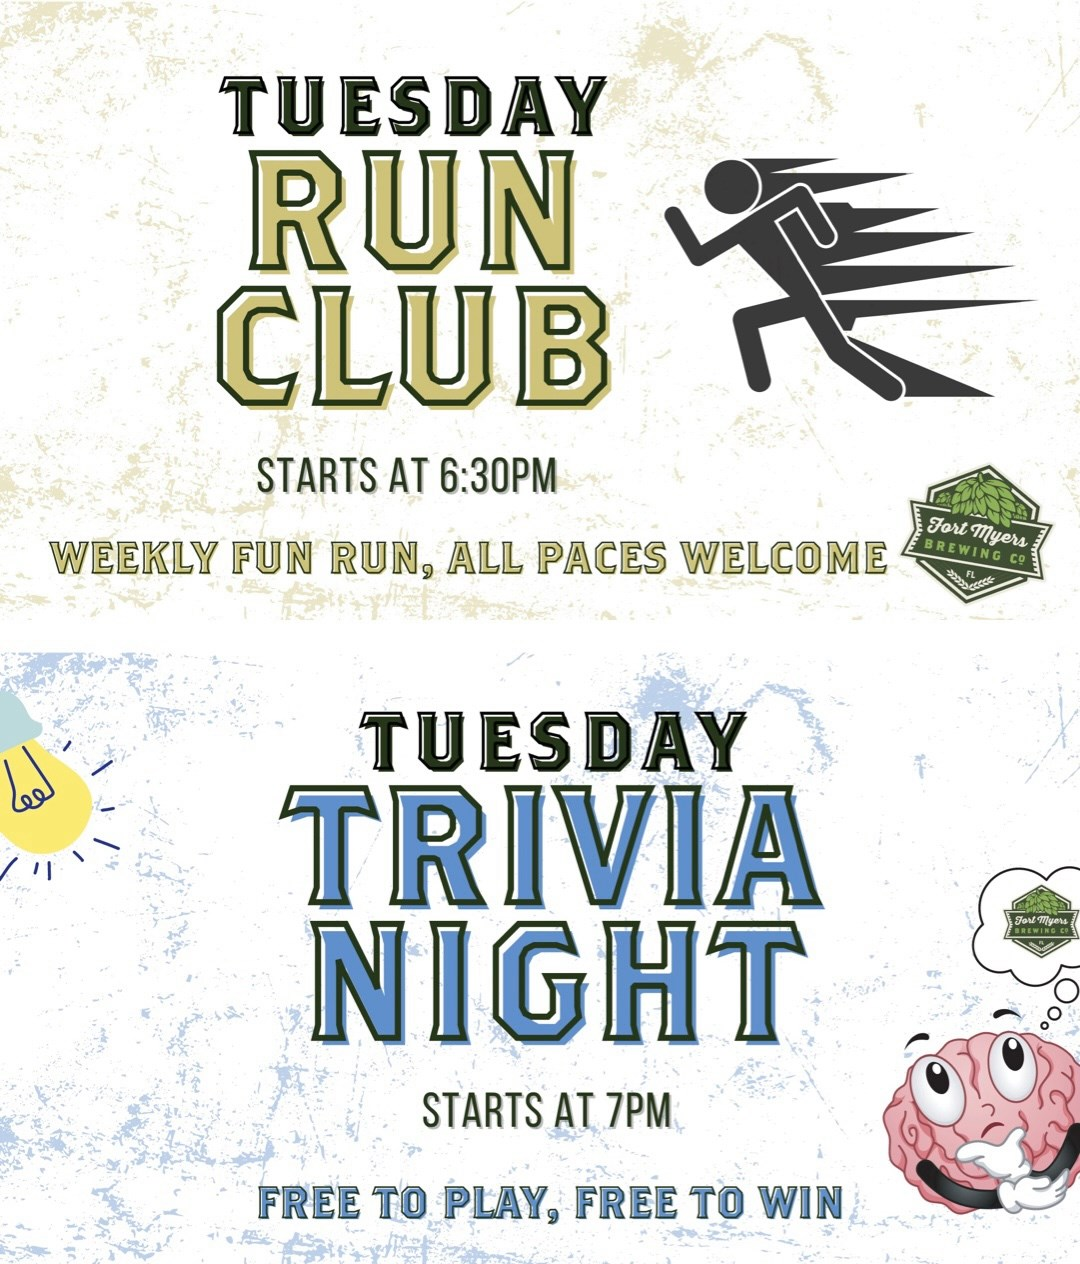 Put your body and mind to the test tonight! Join our 5k fun run at 6:30 with our